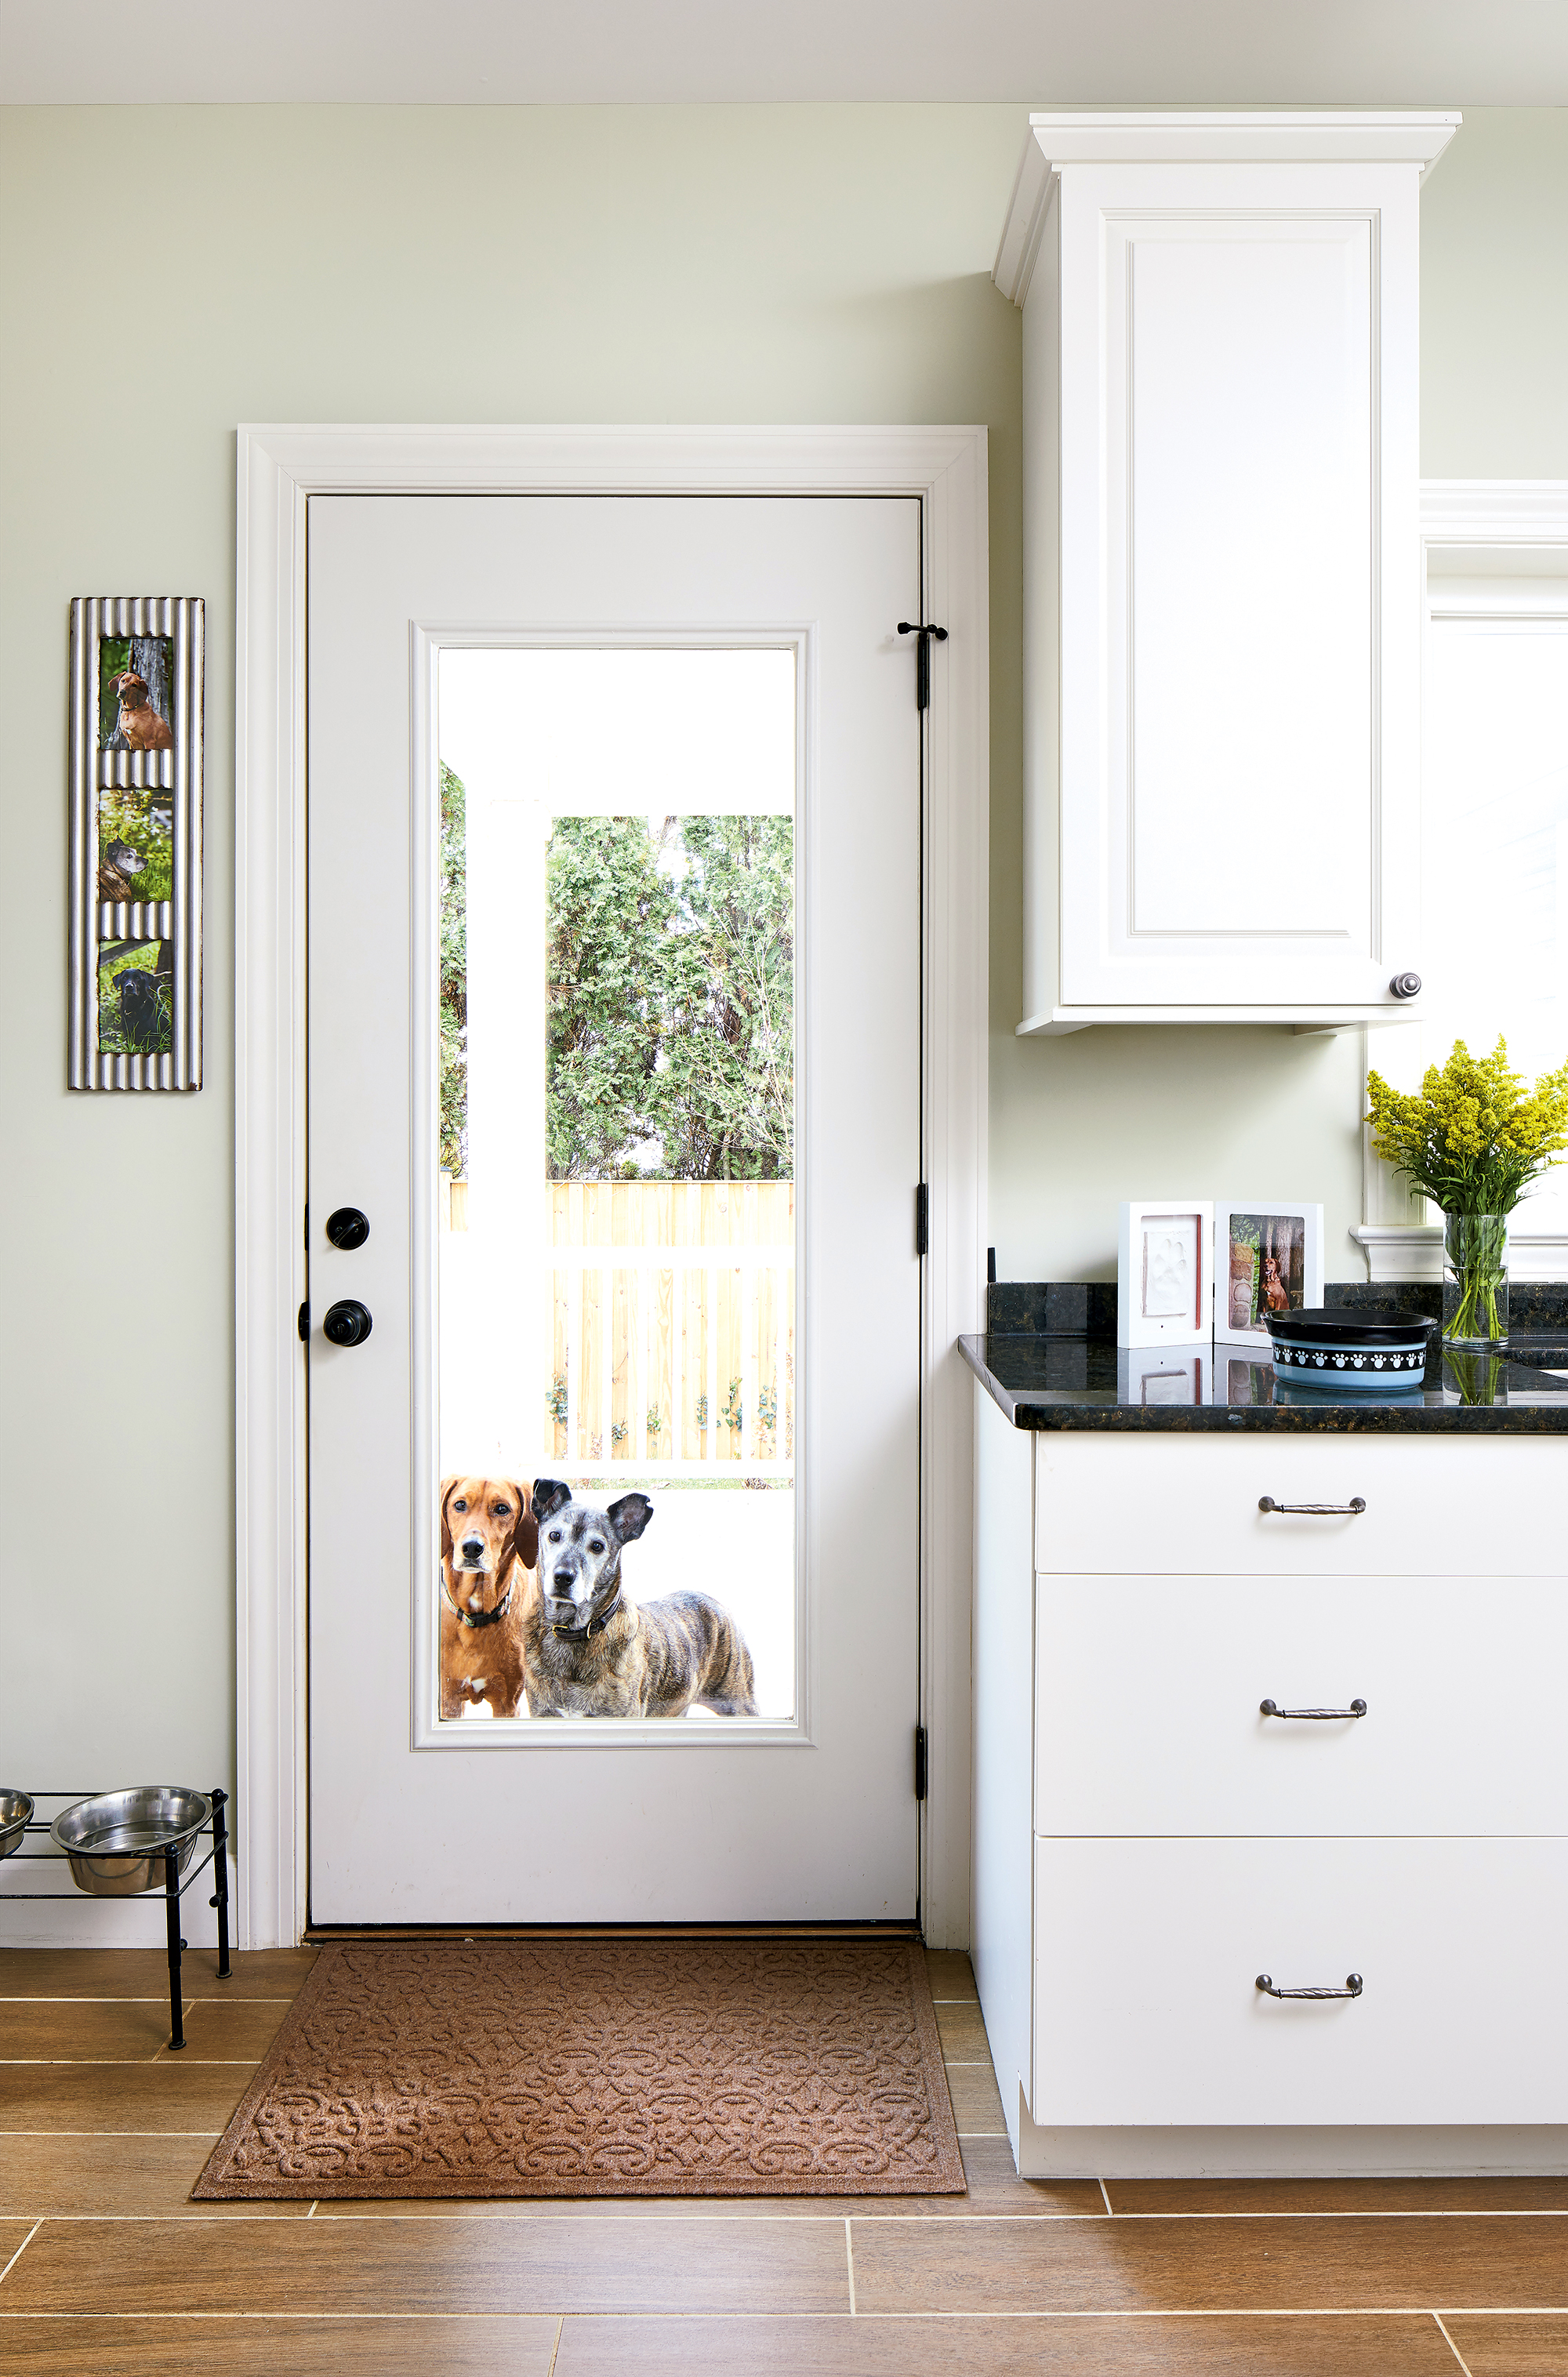 Take a look at this dog-centric Falls Church home, plus other pet-friendly design ideas. Photograph by Stacy Zarin Goldberg.